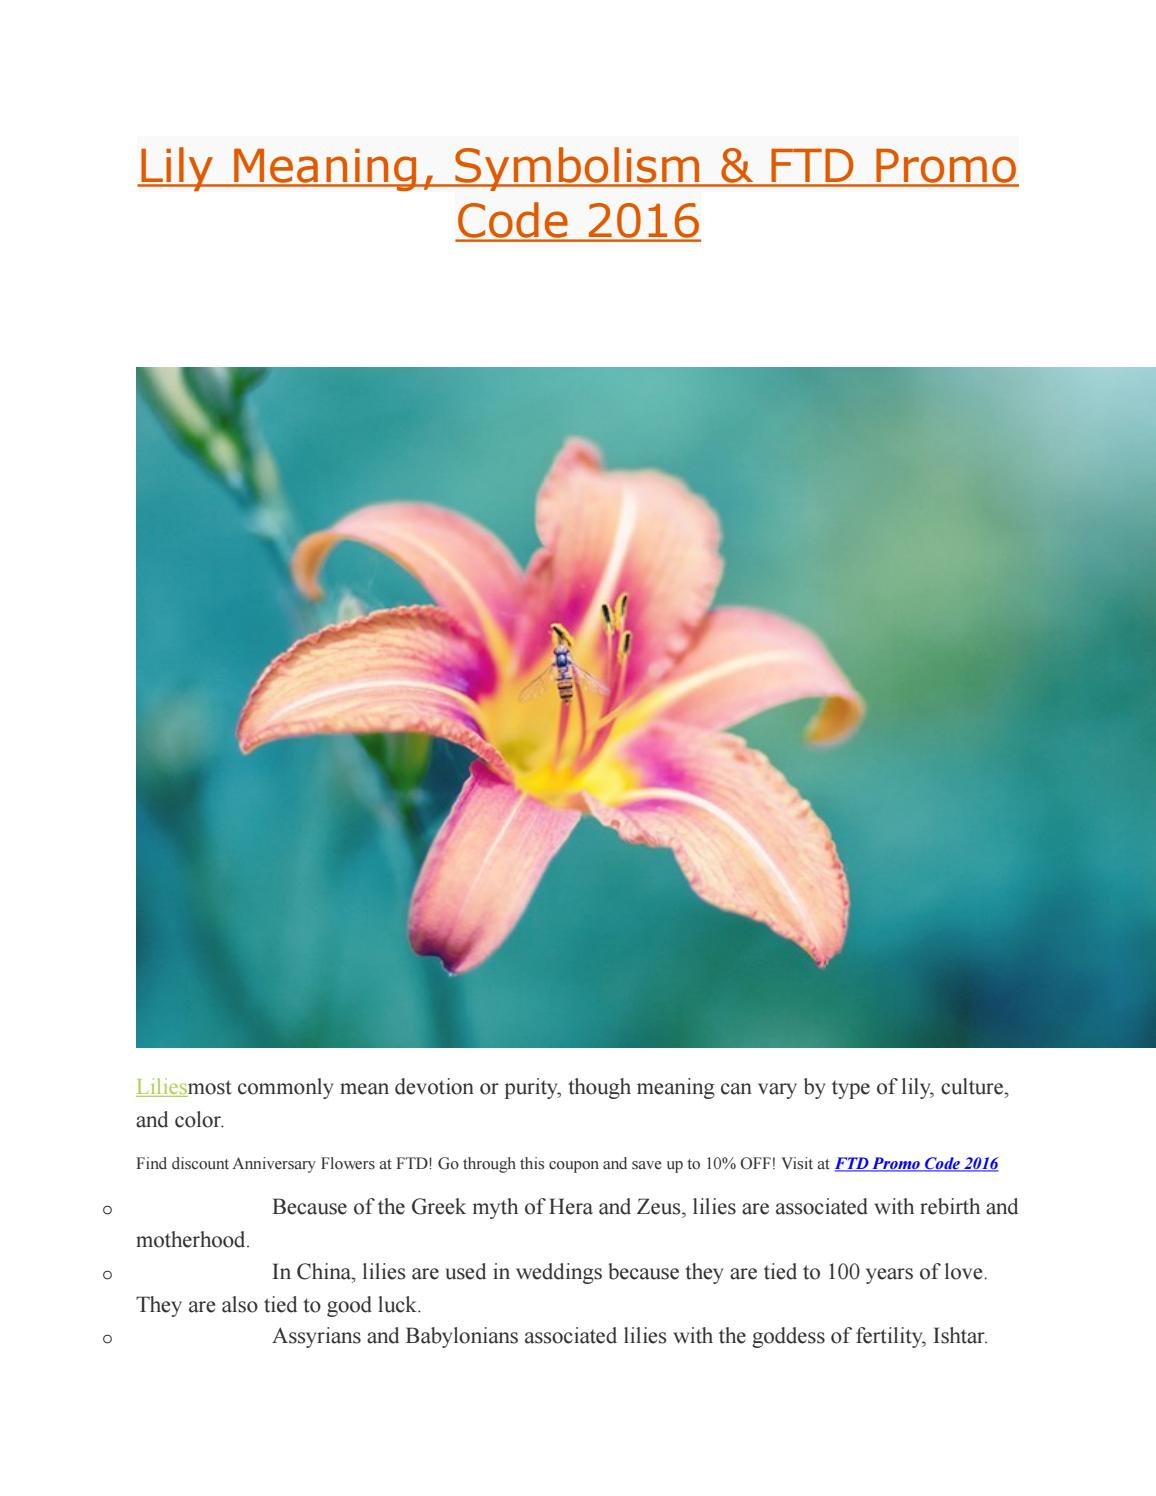 Lily meaning symbolism ftd promo code 2016 by th thy issuu izmirmasajfo